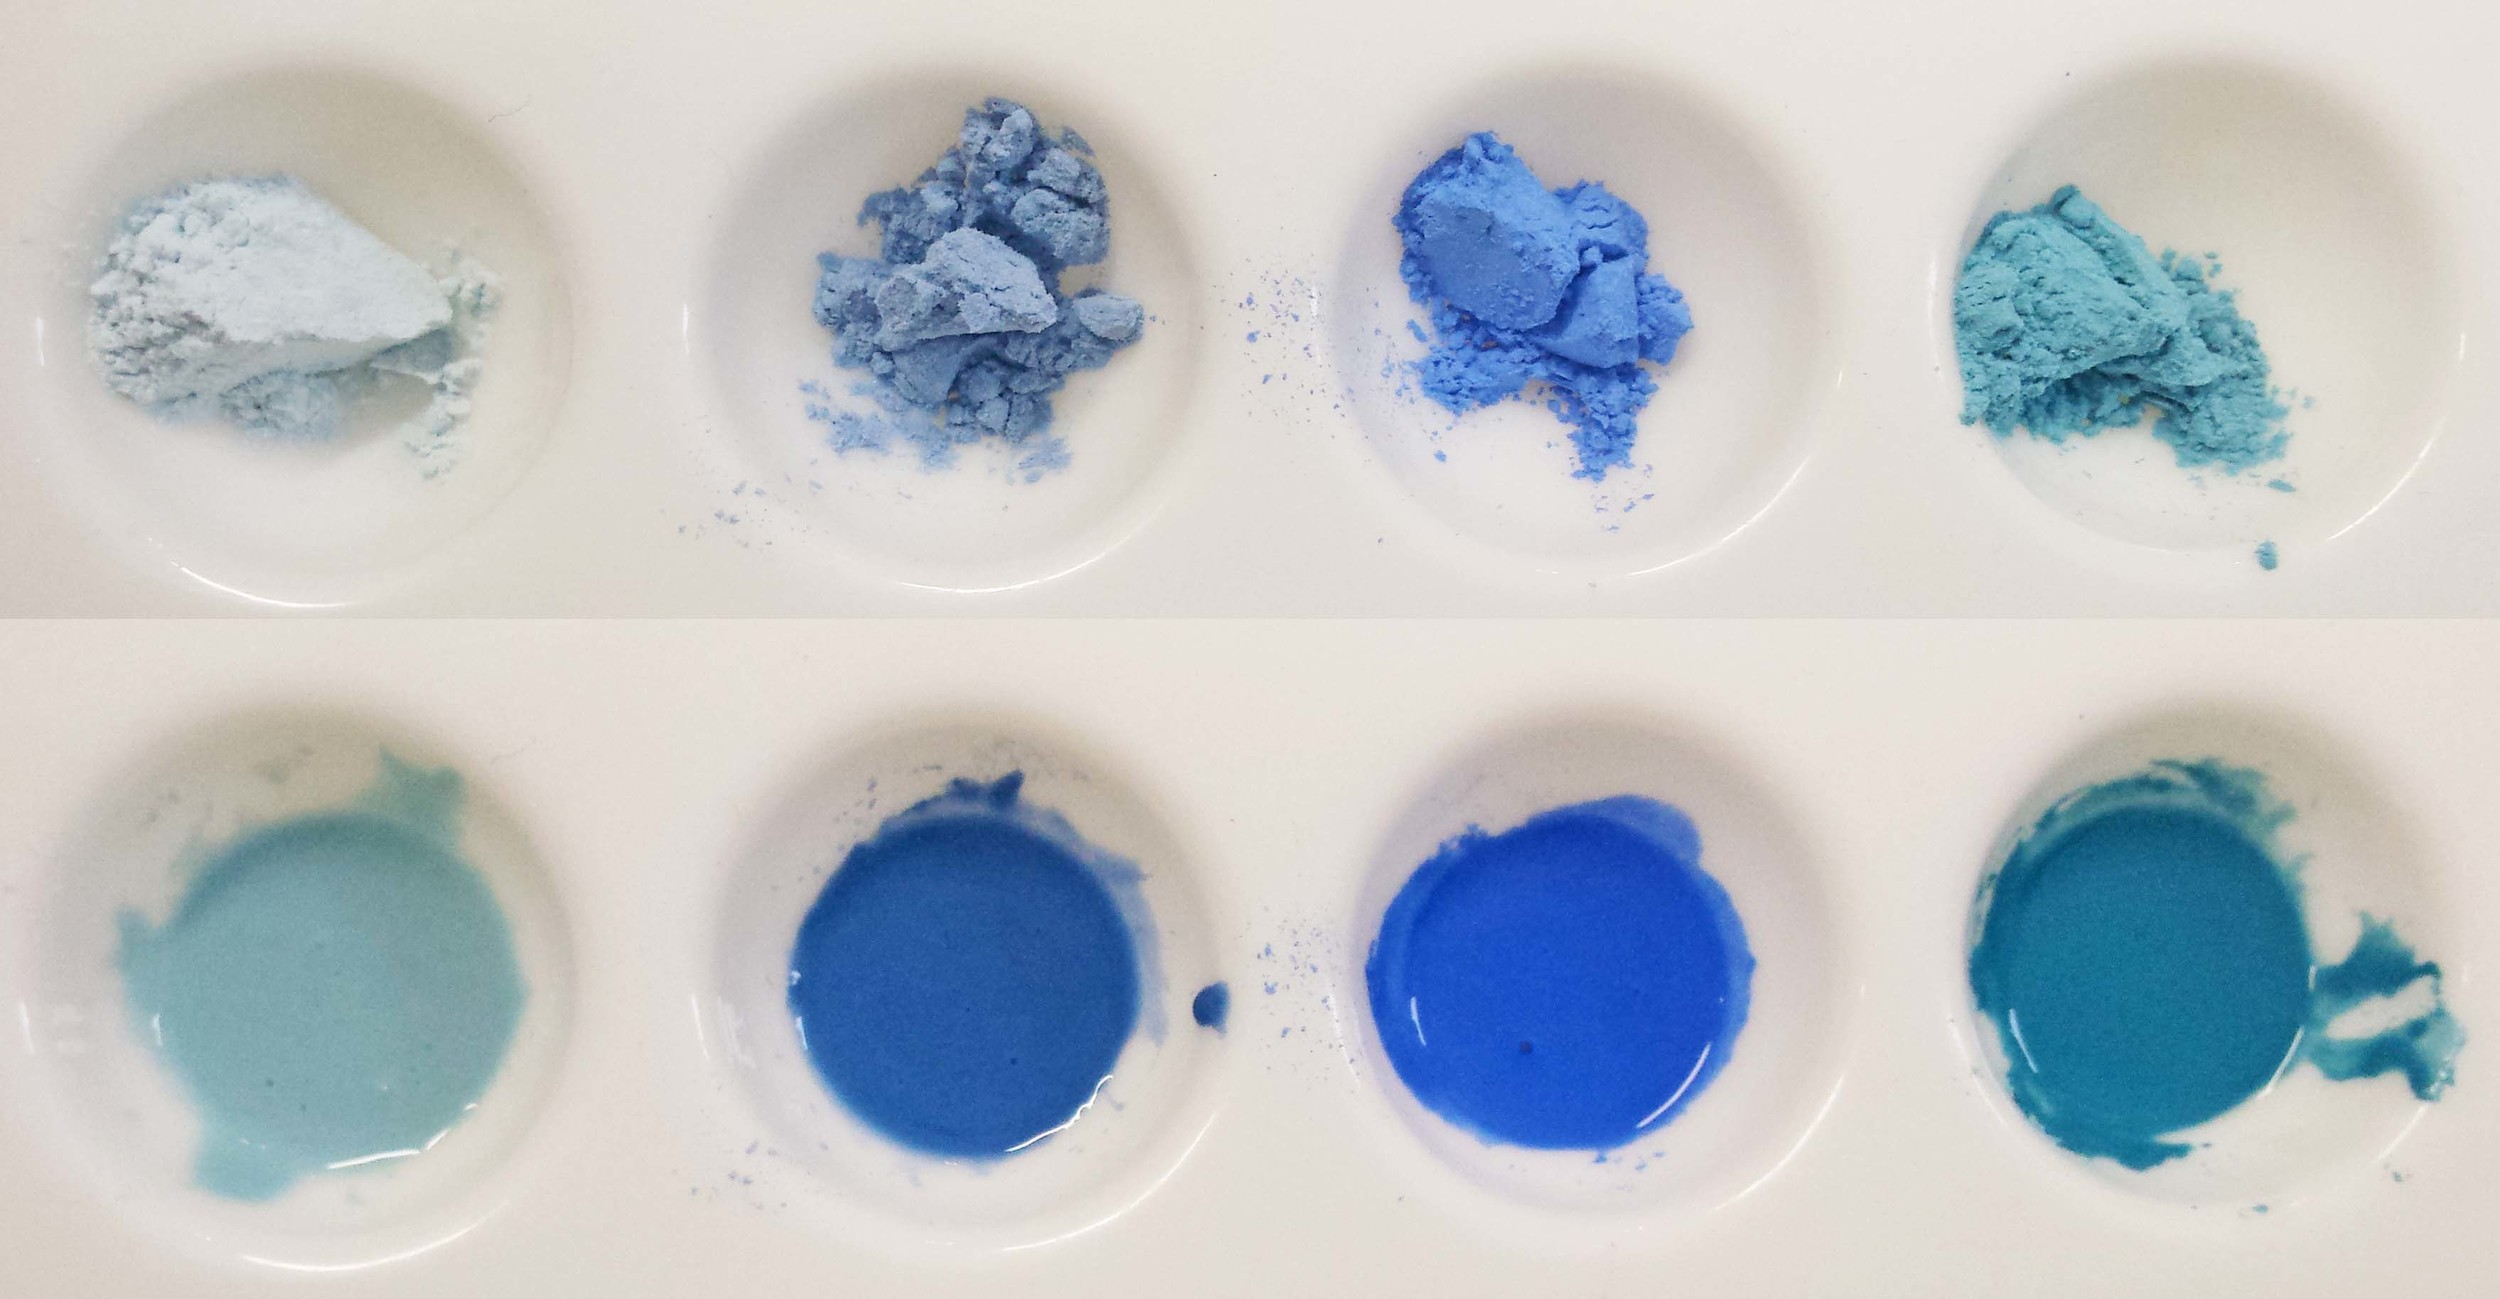 Dry enamel pigments and prepared pigments with a liquid medium.